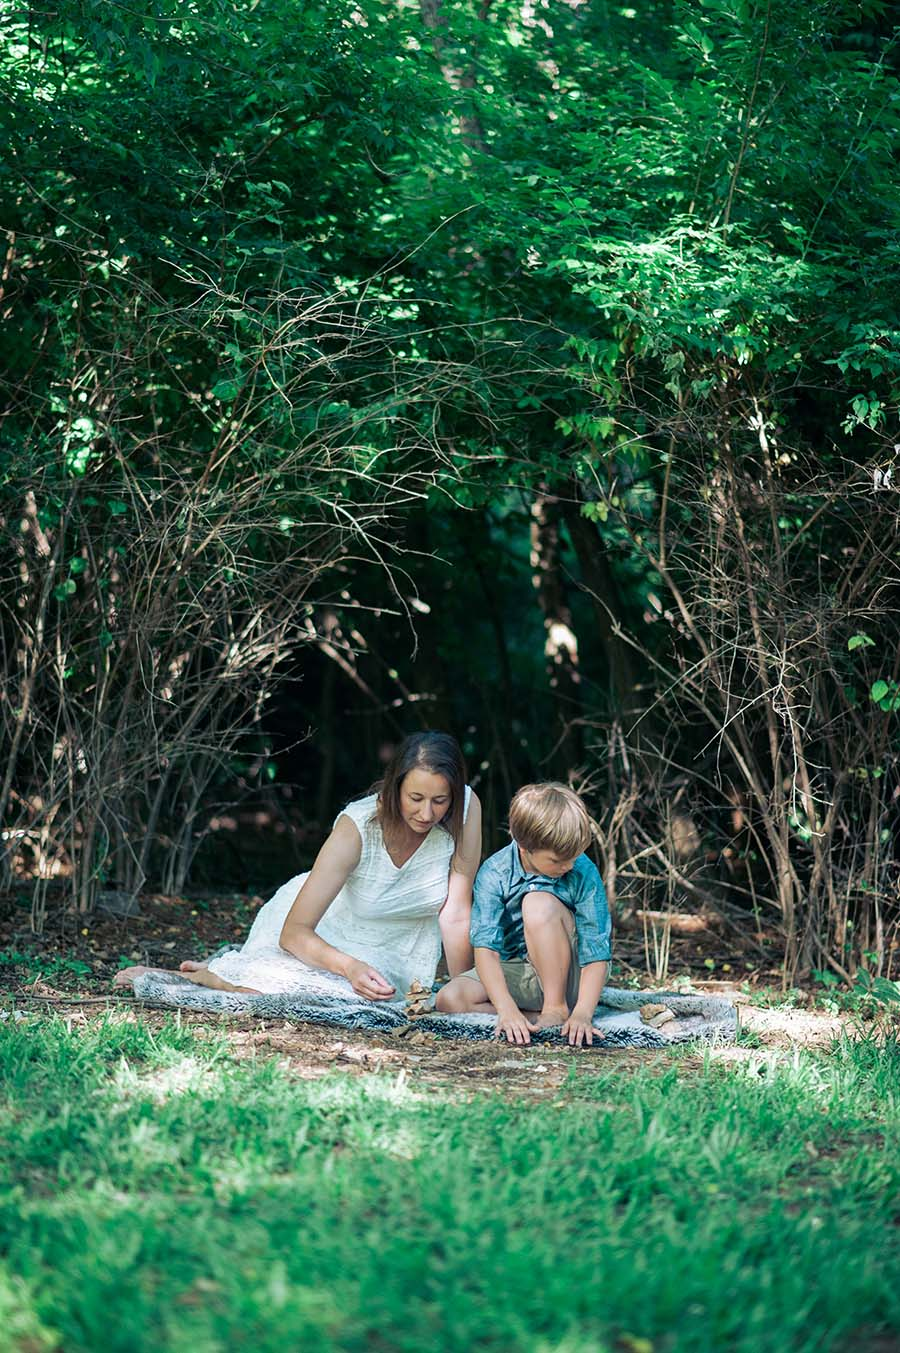 blog_Mothers_Day_Minis_2015_Ember_Session_Sarah_Brewer (41 of 61).jpg